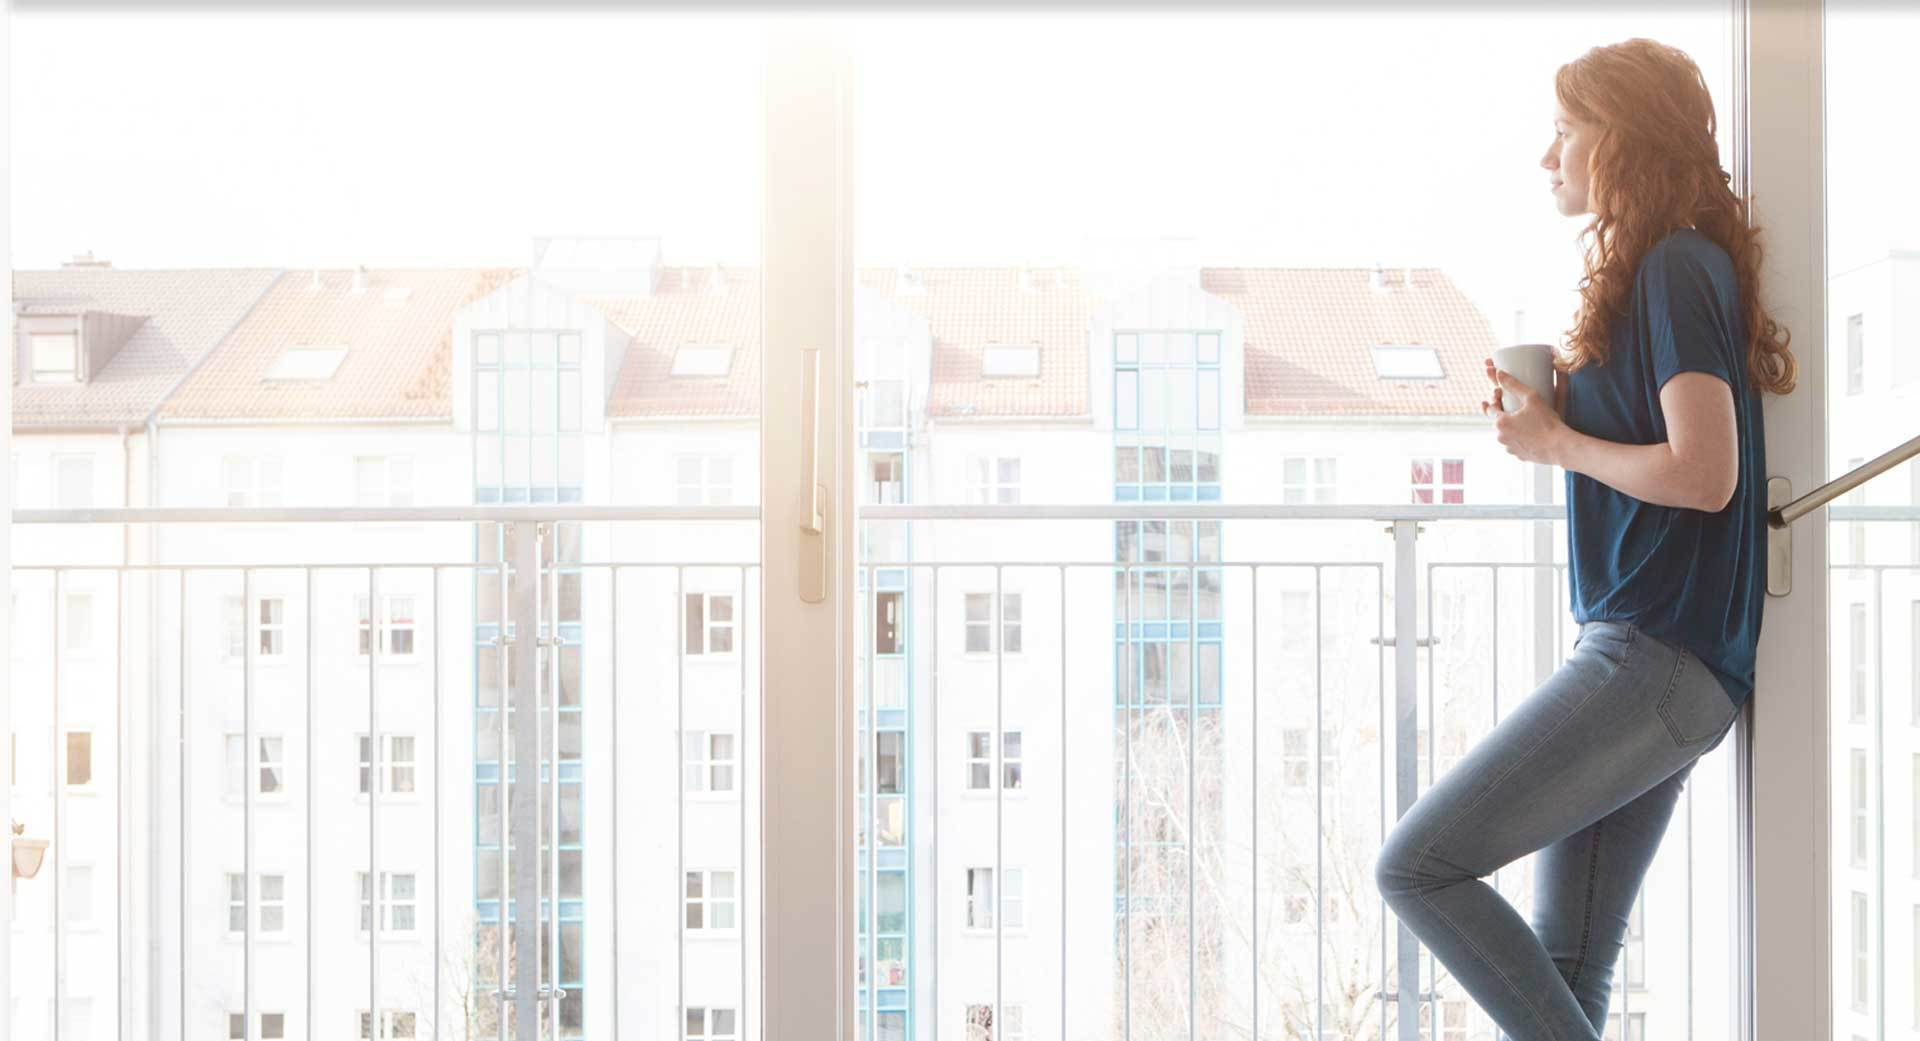 Elevate your everyday with Alicante Apartment Homes